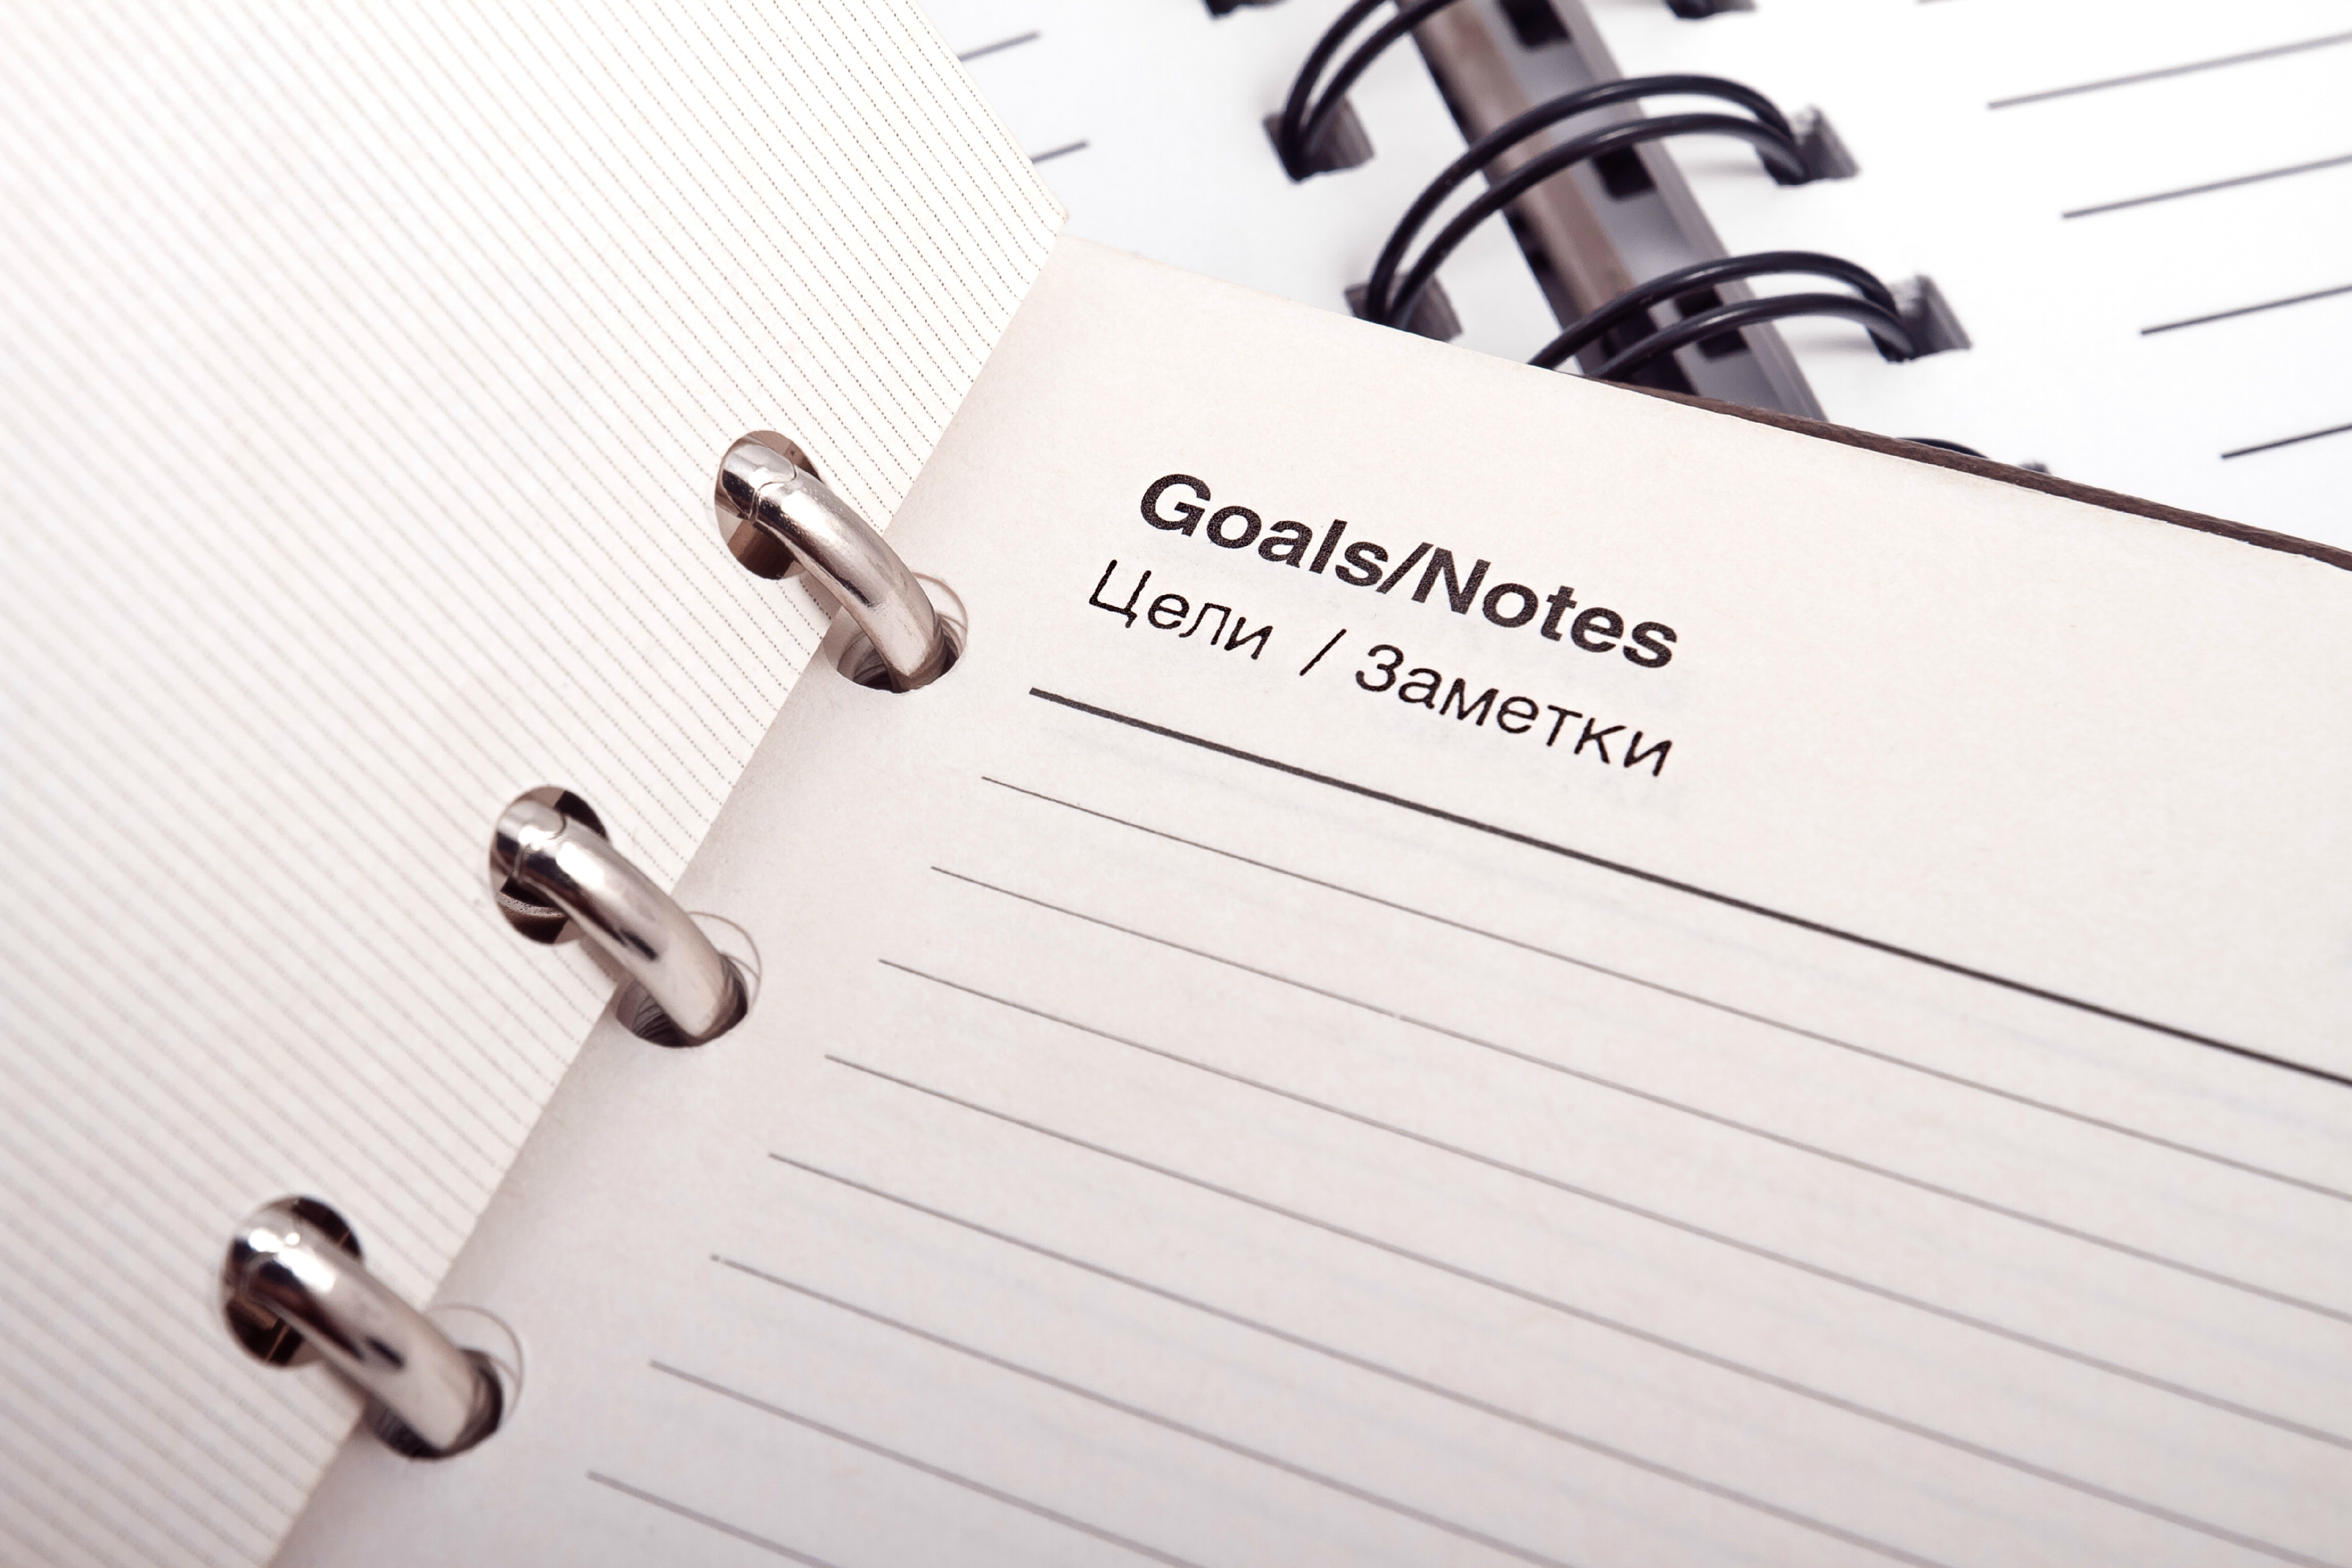 Are you setting reasonable business goals?